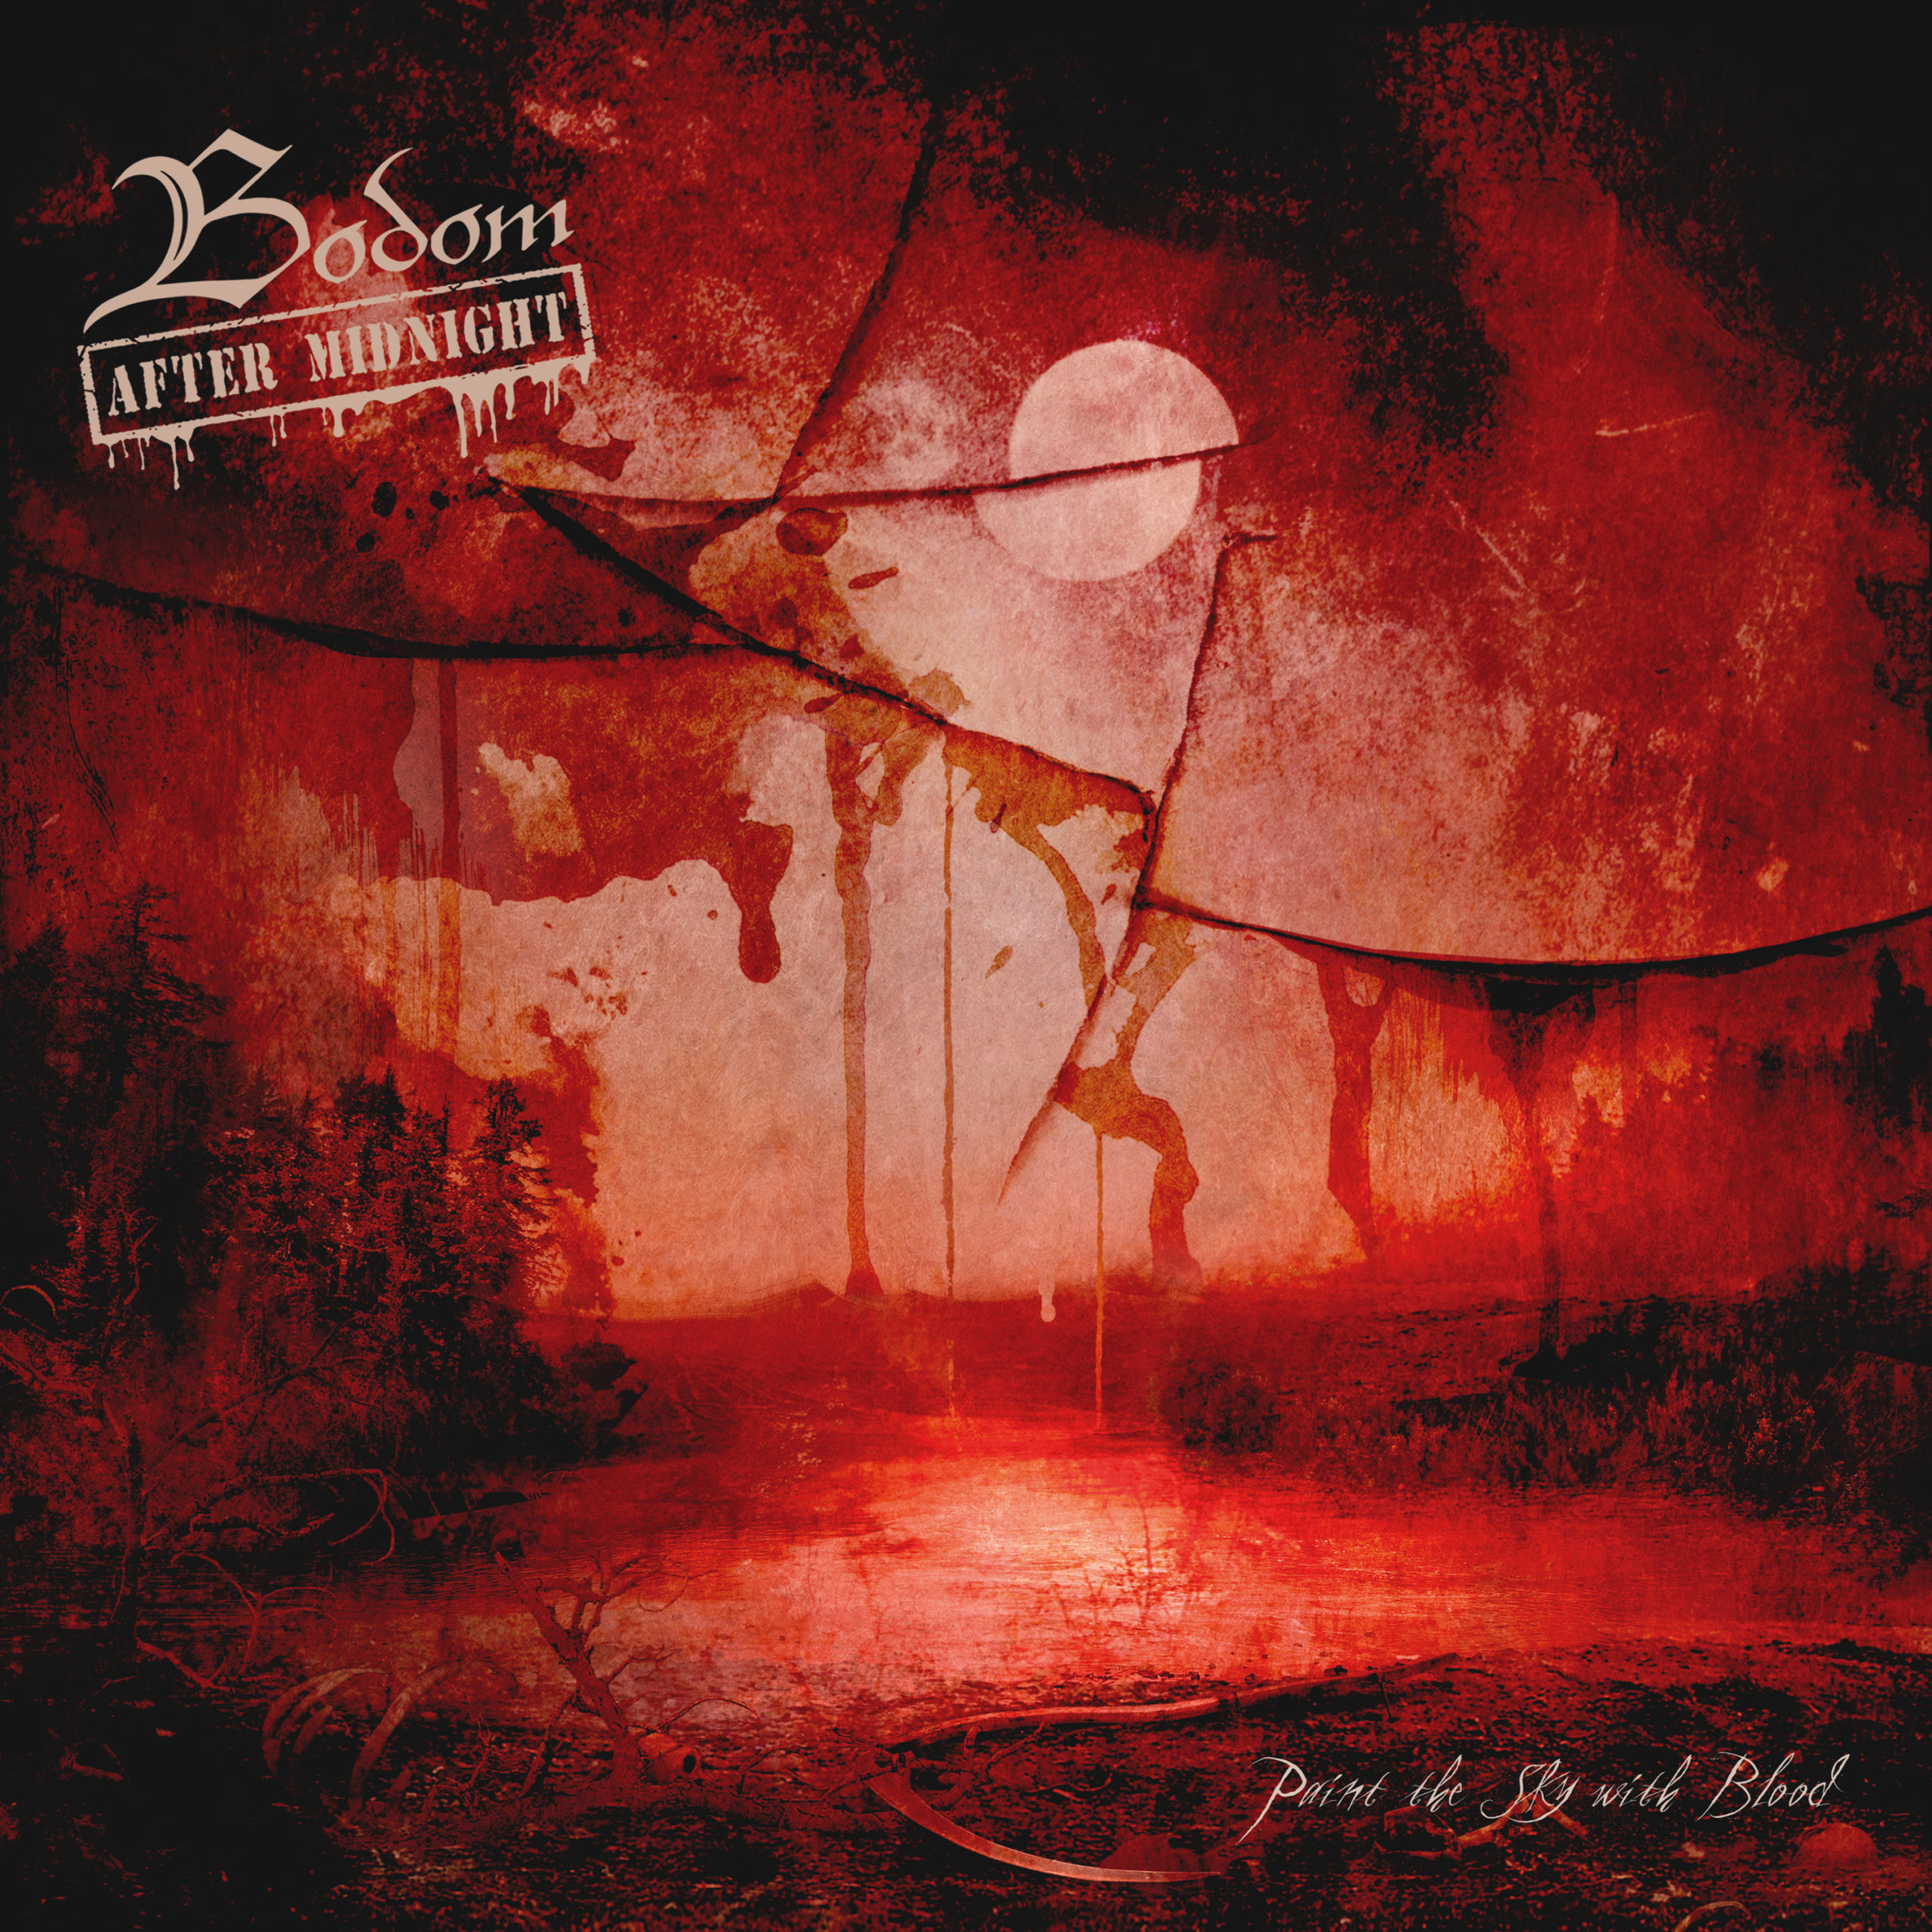 REVIEW: Bodom After Midnight – EP: Paint the Sky with Blood